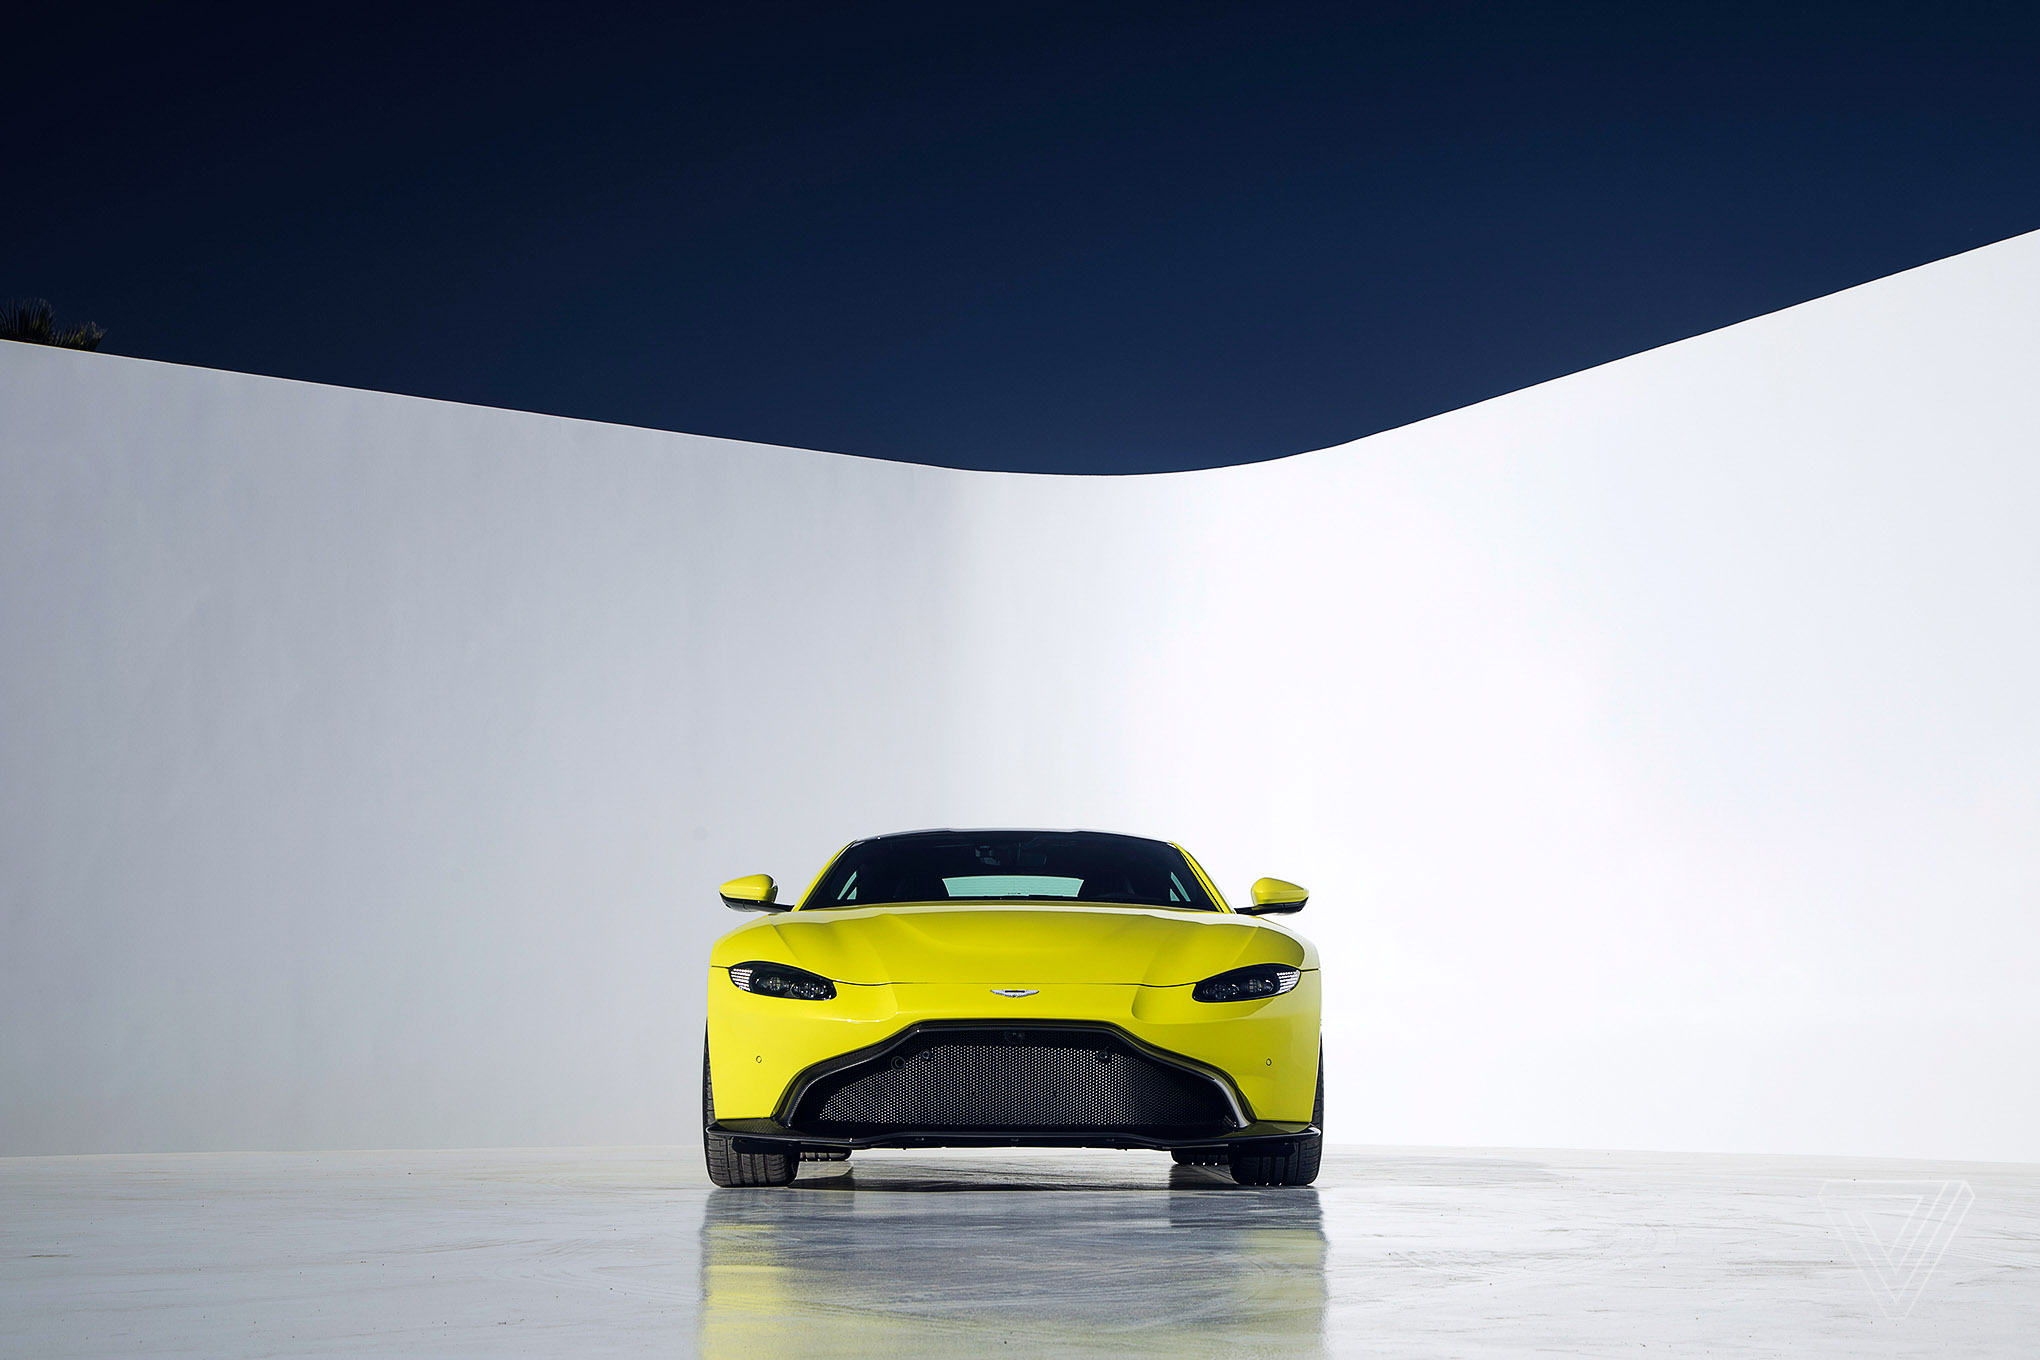 Aston Martin Vantage prepares to take on the Porsche 911